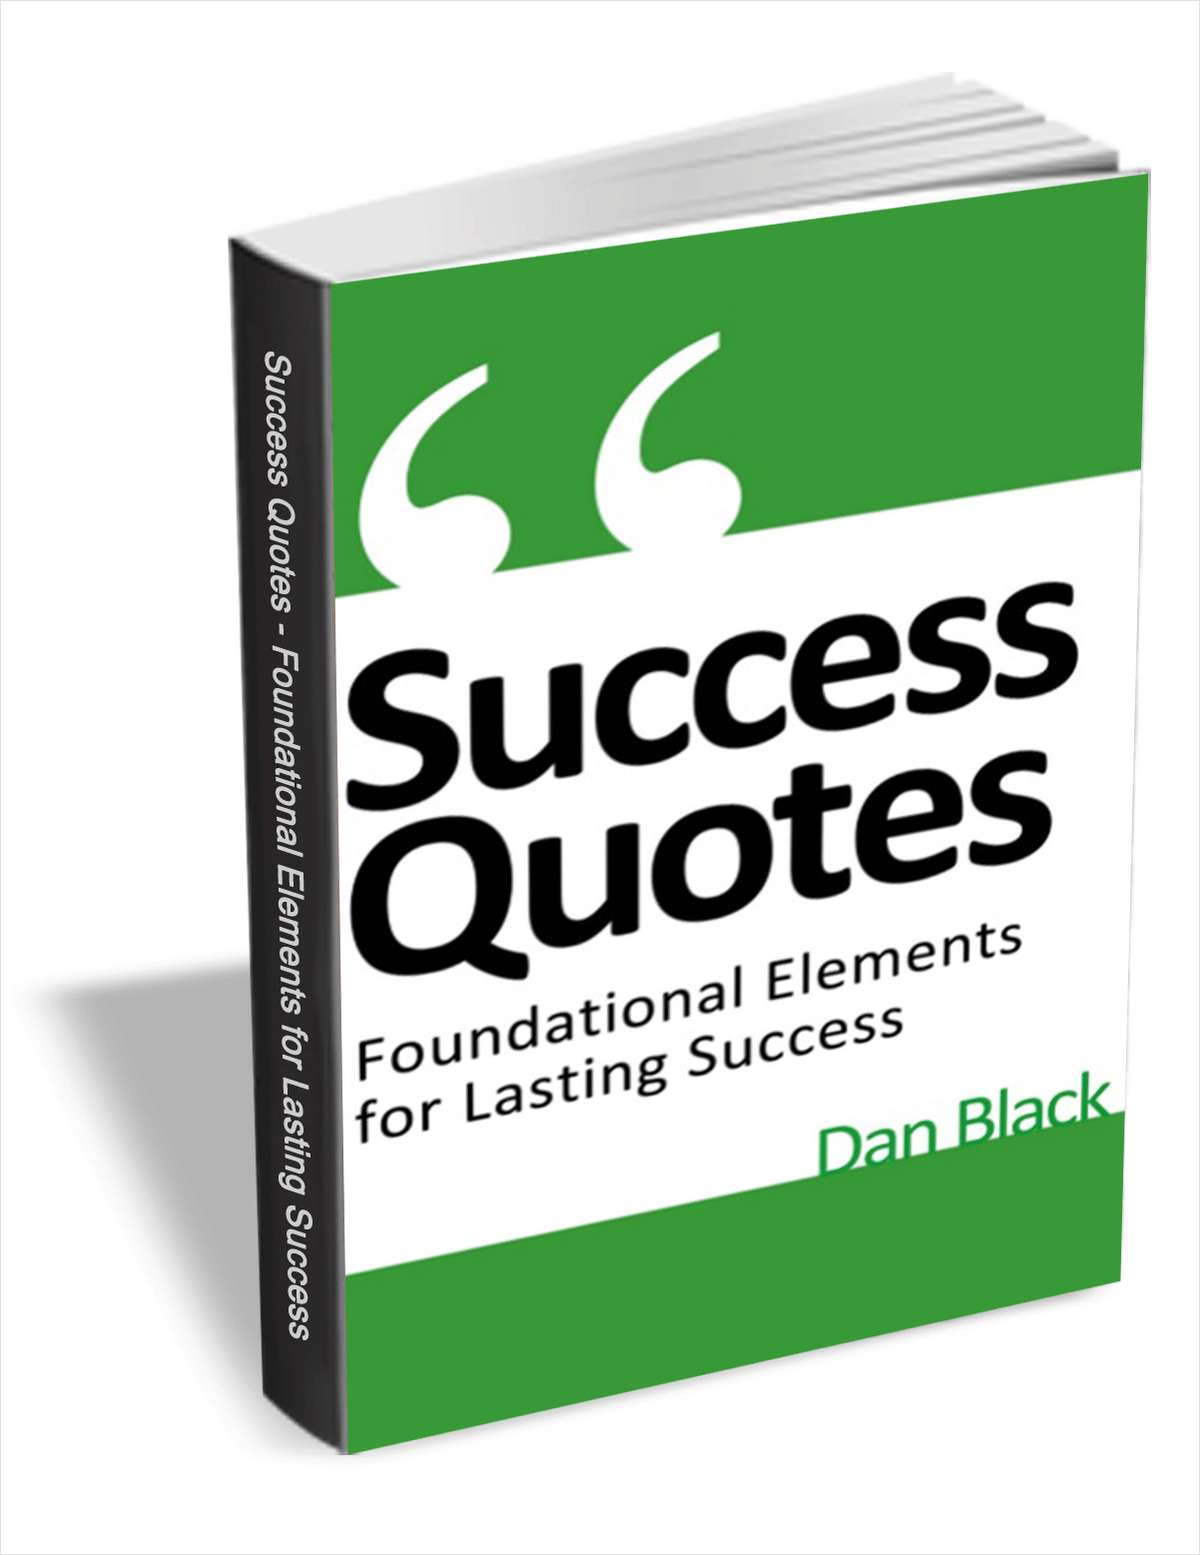 Success Quotes - Foundational Elements for Lasting Success